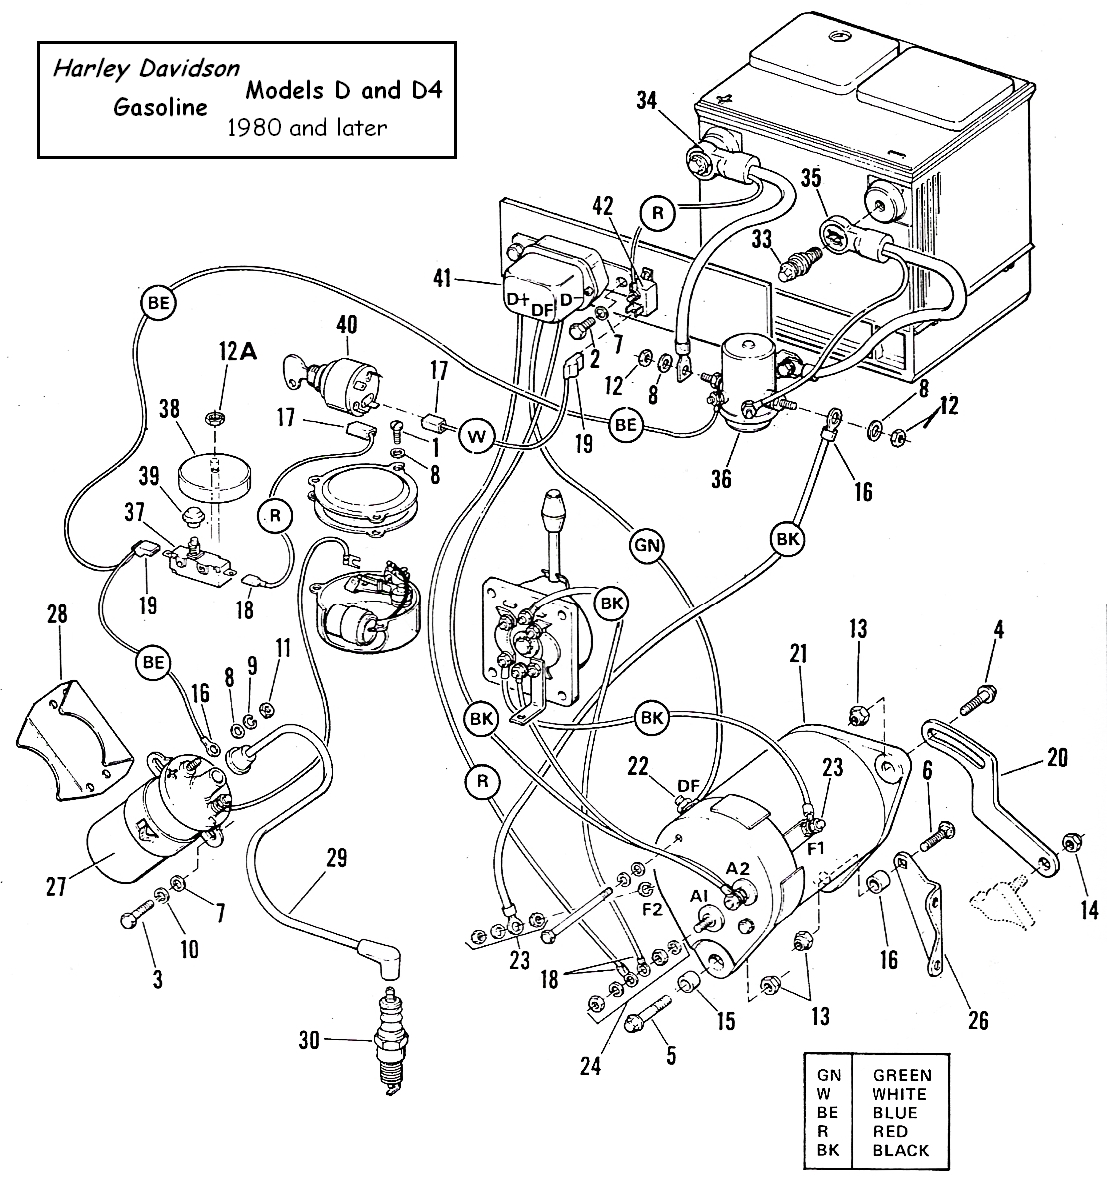 hight resolution of wiring diagram for g5 yamaha ga golf cart